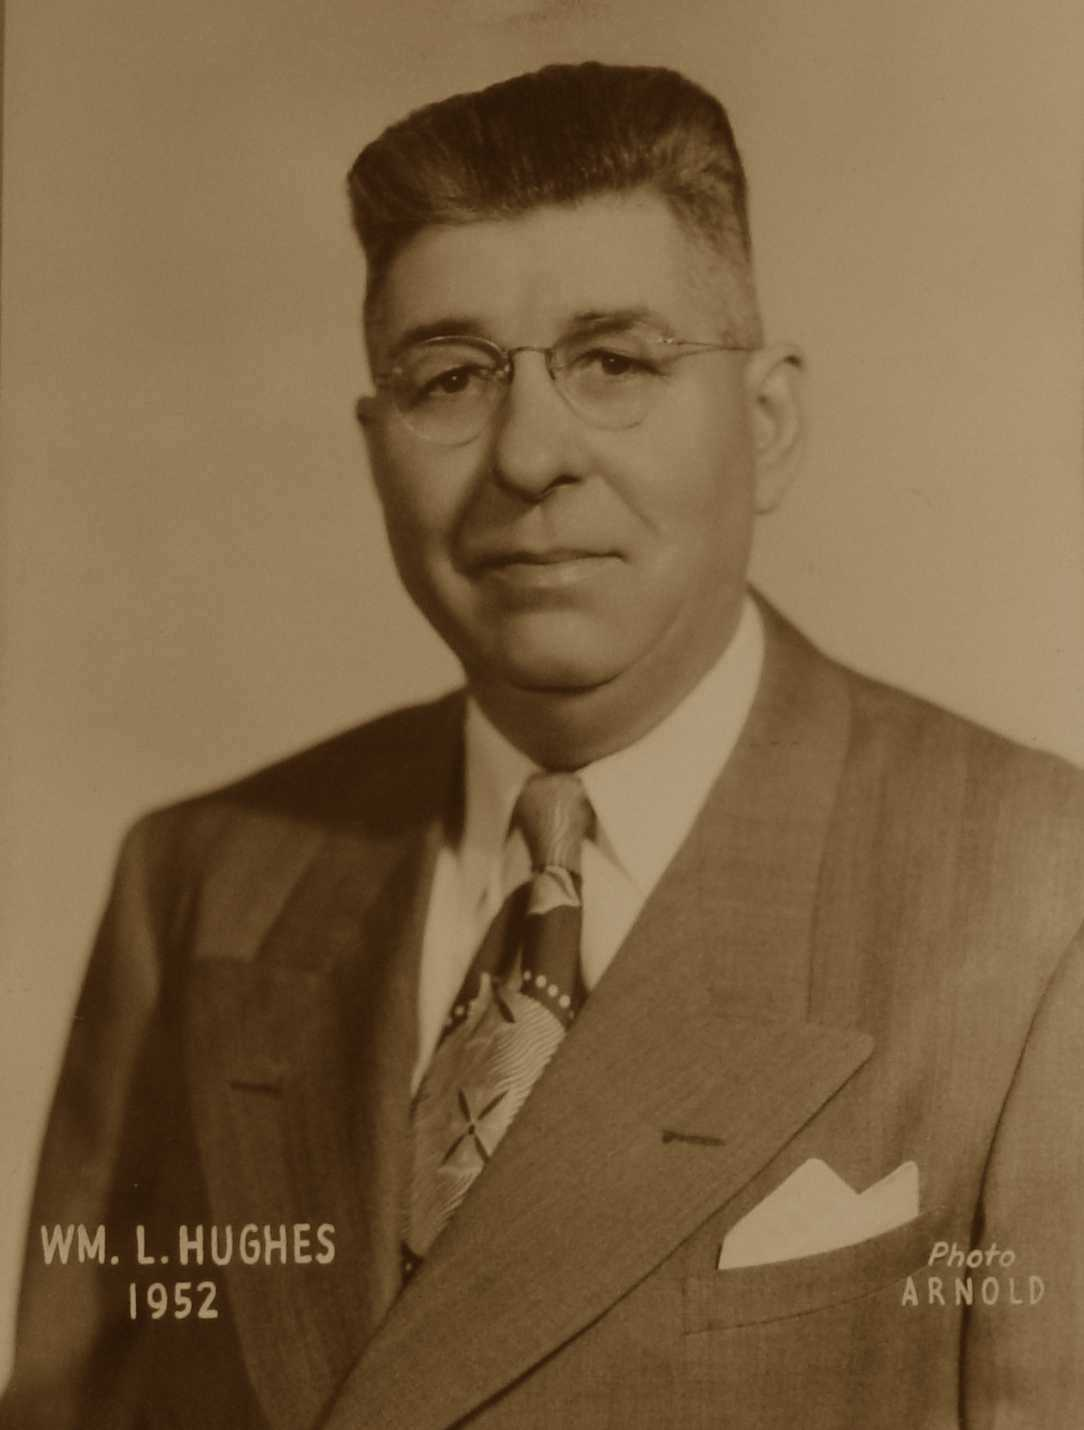 William L. Hughes, 1952